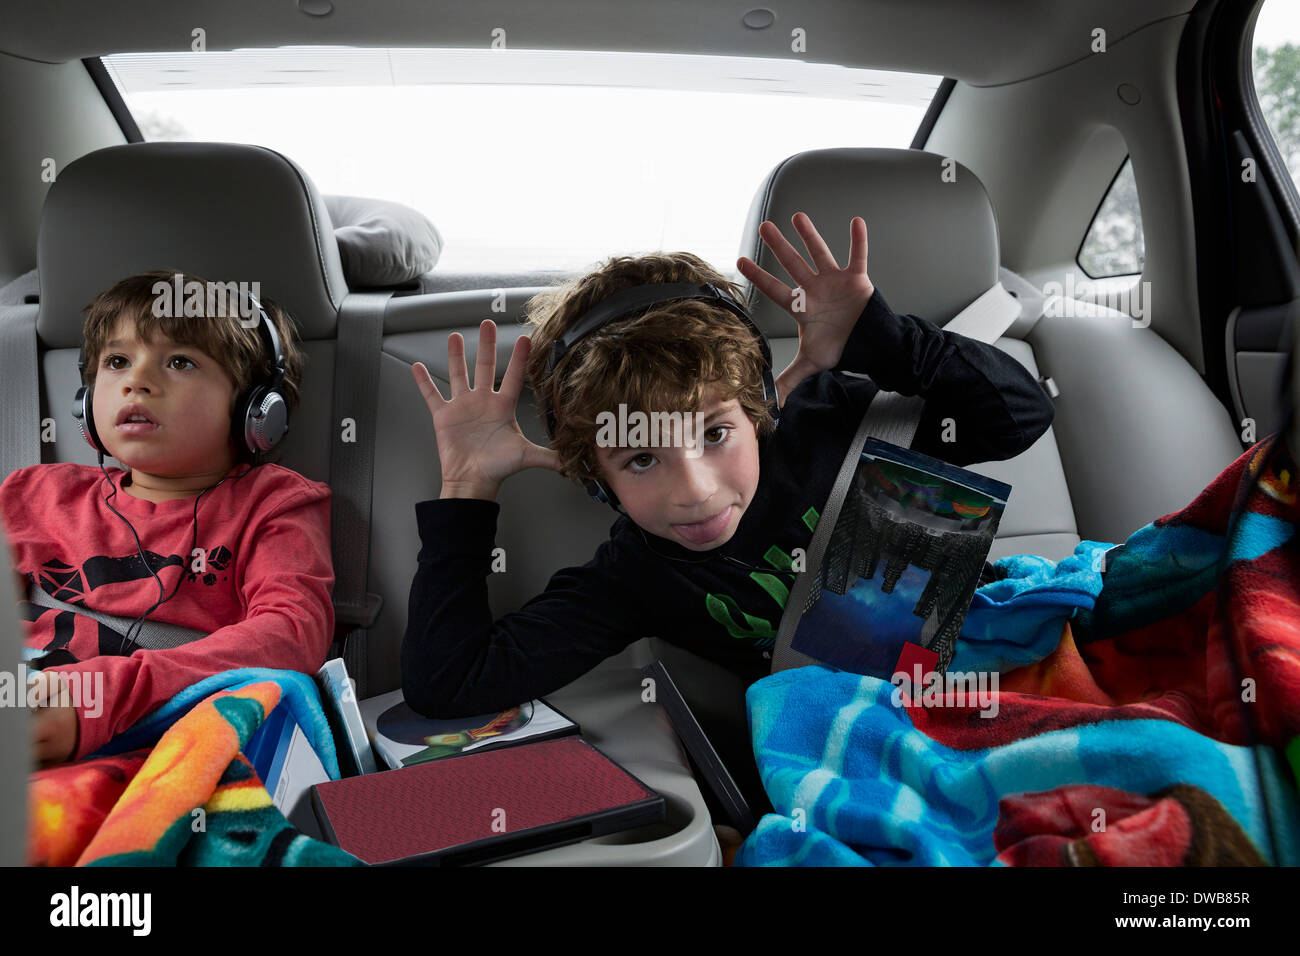 Brothers in back seat of car, wearing headphones Stock Photo